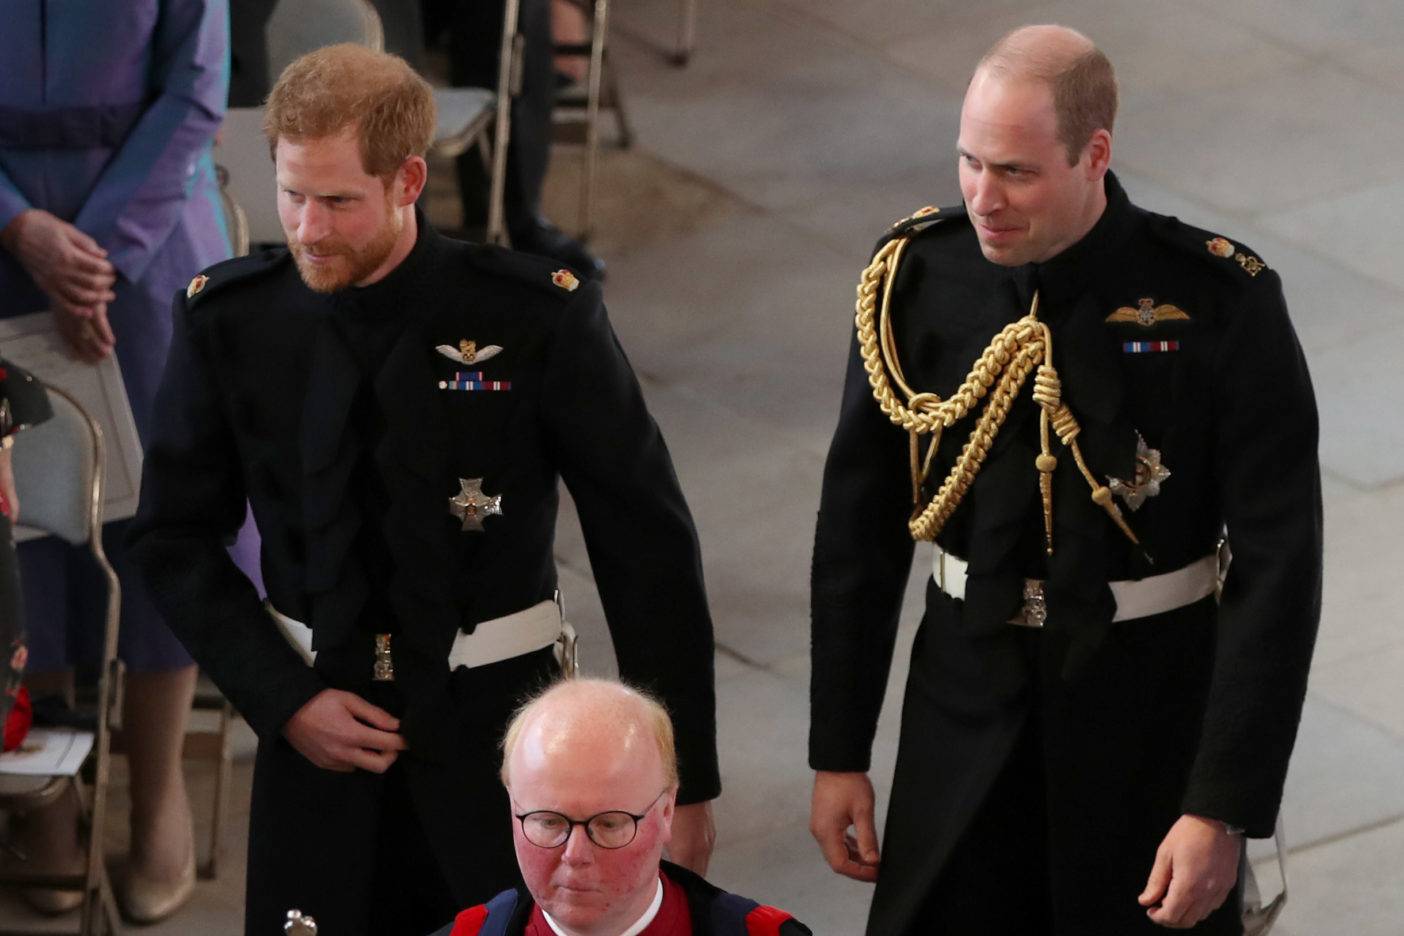 Prince Harry and Prince William at the Royal Wedding of Harry